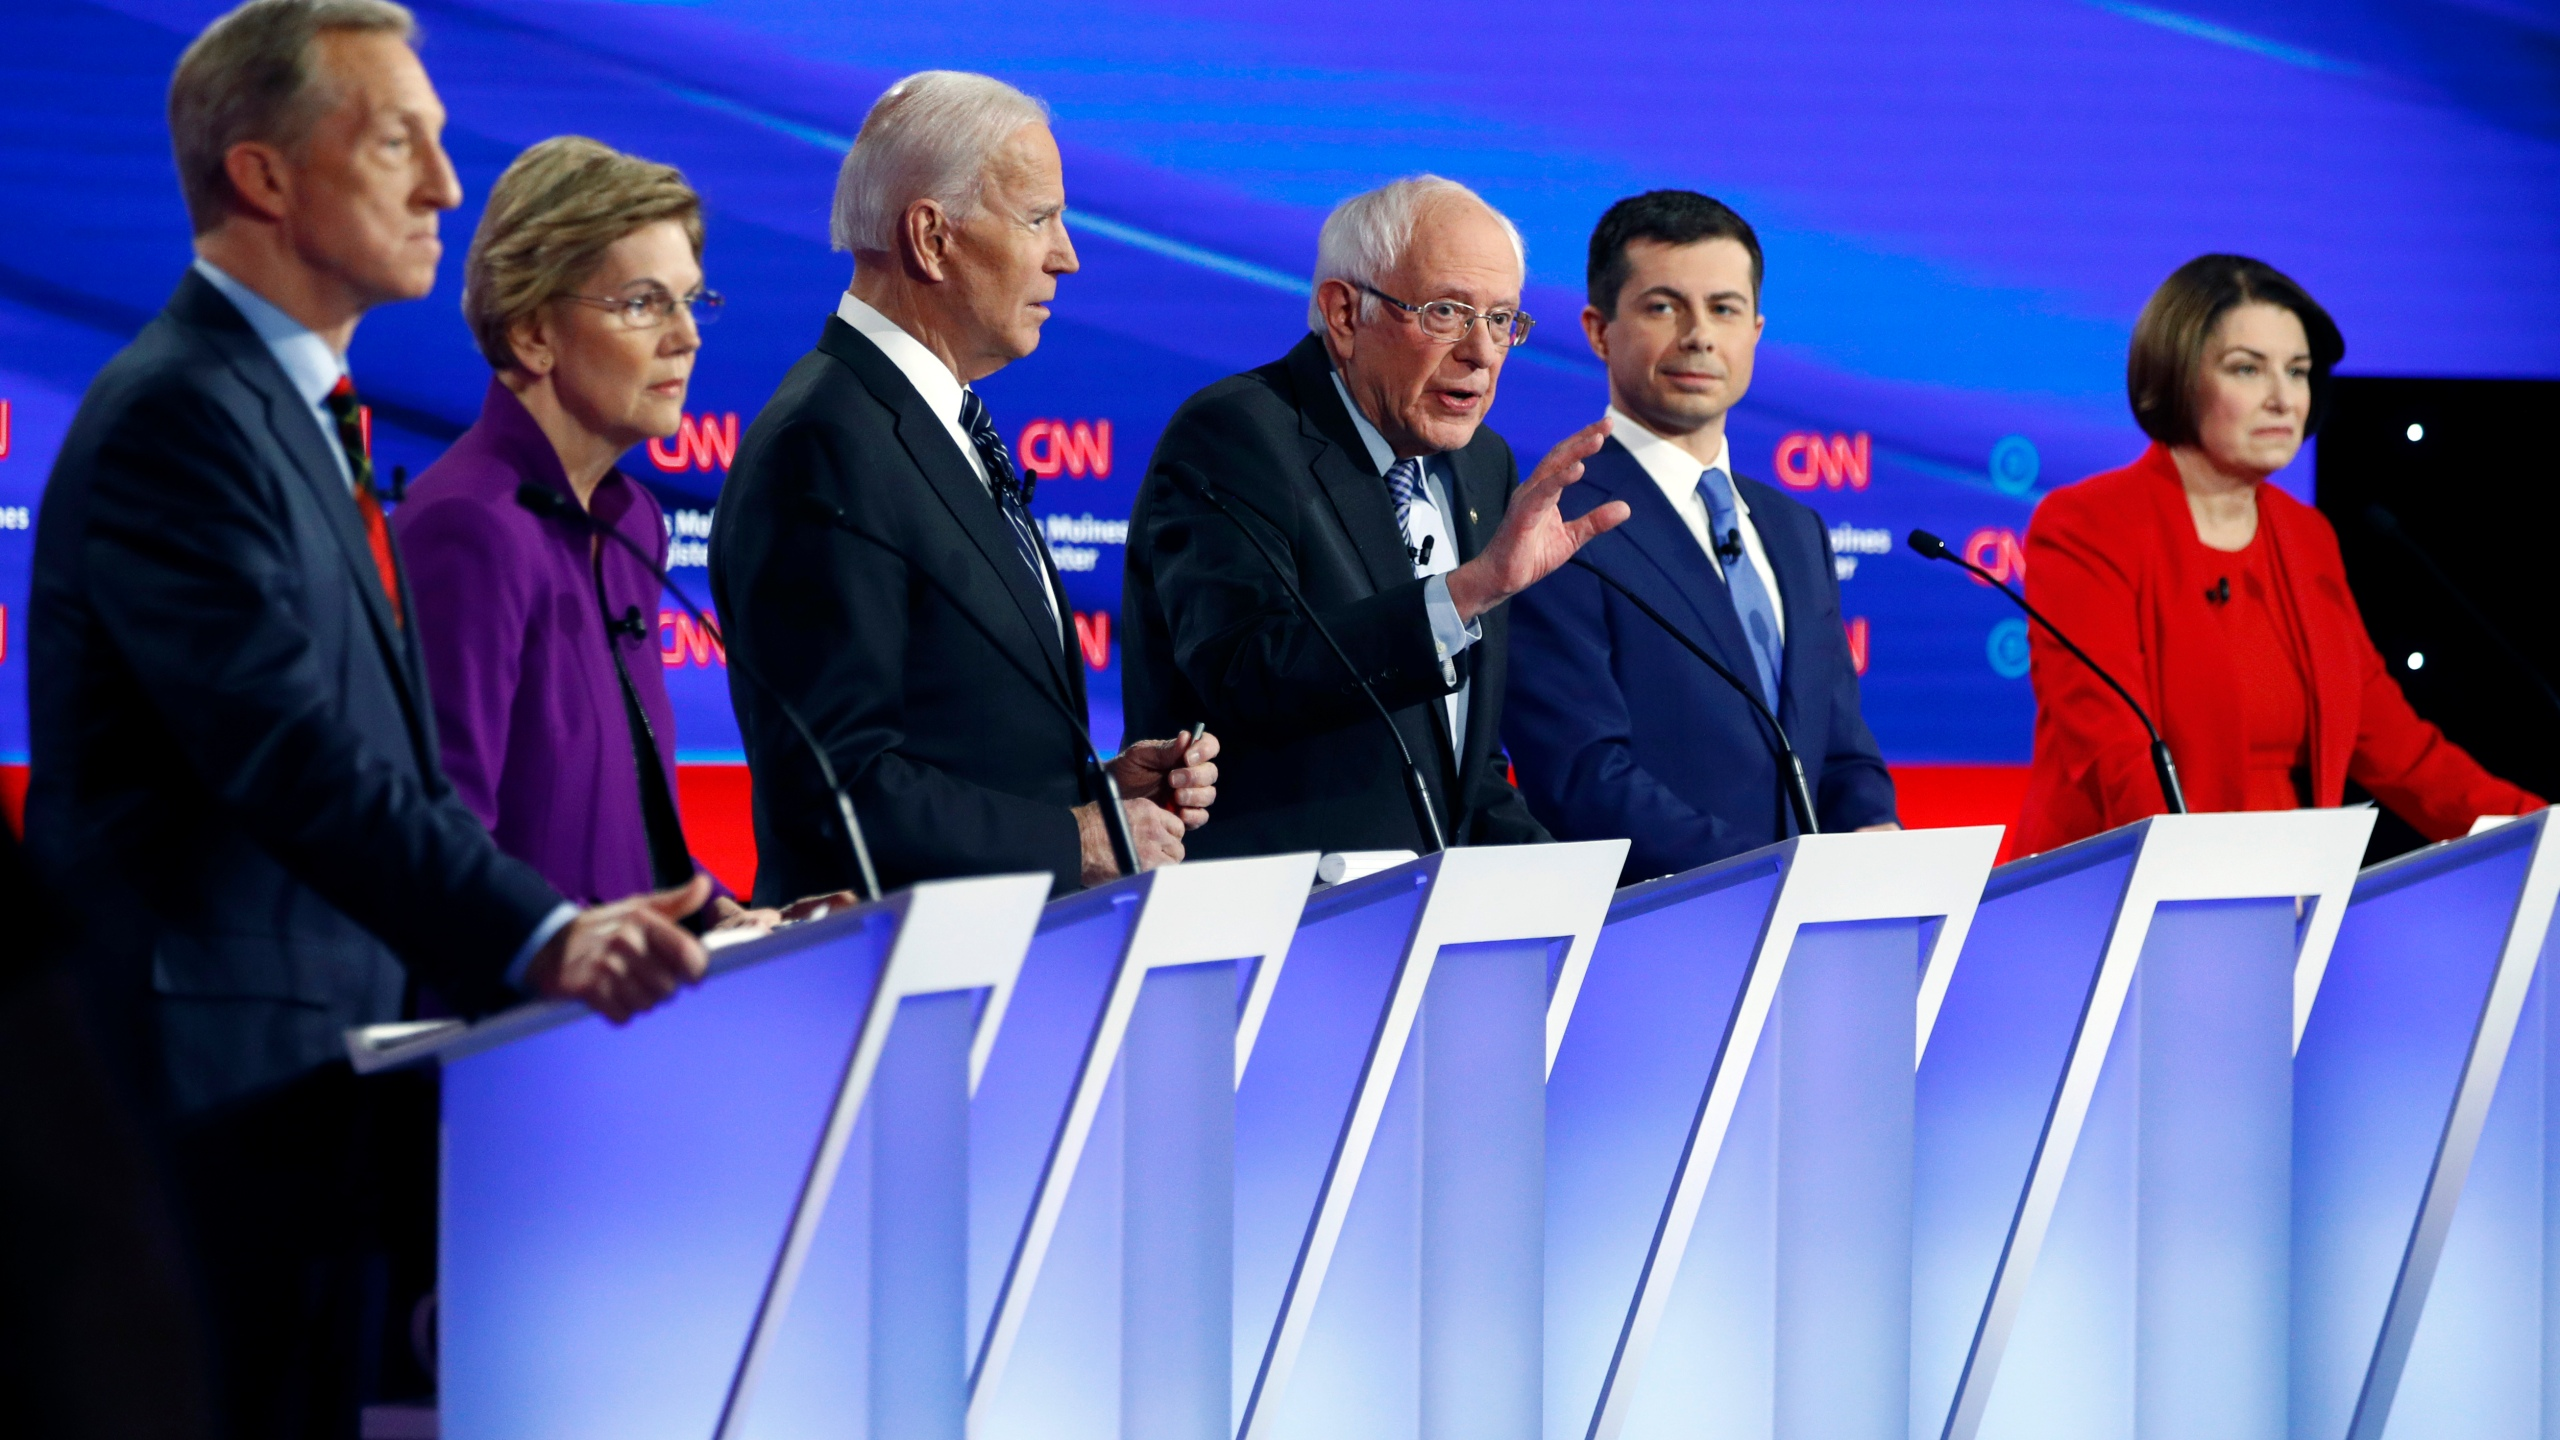 Amy Klobuchar, Pete Buttigieg, Bernie Sanders, Joe Biden, Elizabeth Warren, Tom Steyer